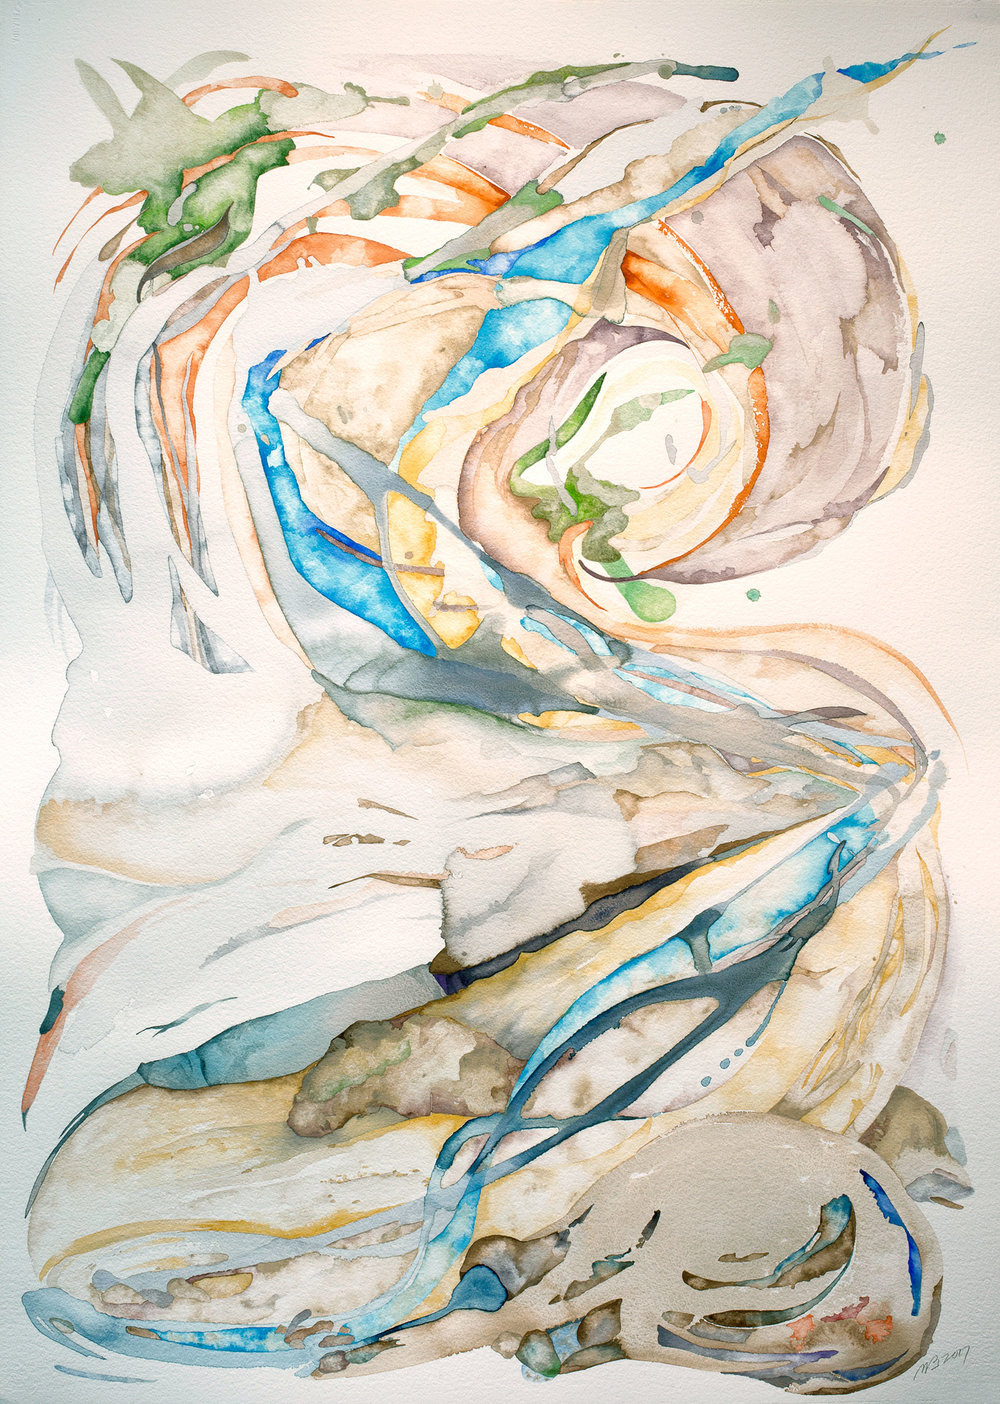 Braided Bed, 2017, watercolor on Italian watercolor paper, 41 x 29.5 in.